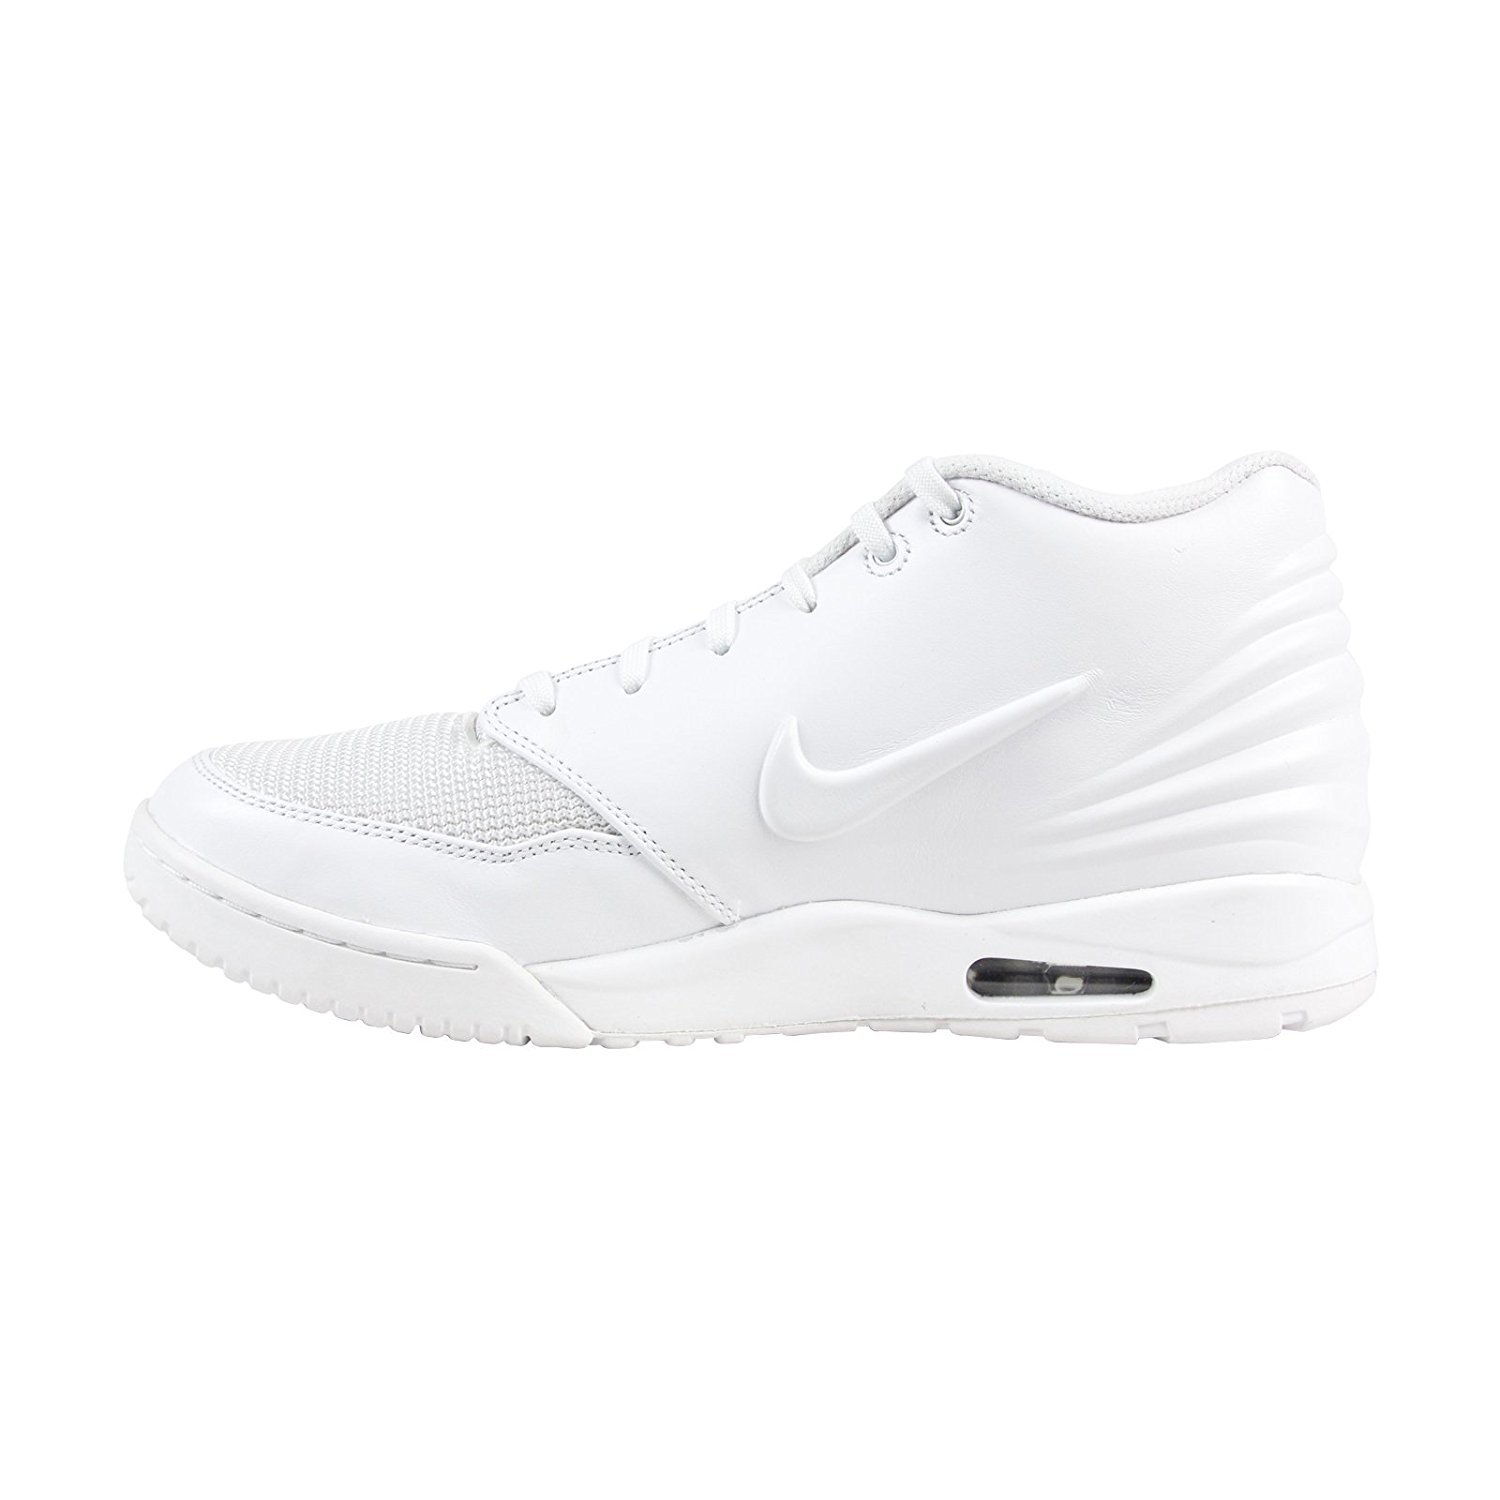 NIKE Mens Air Entertrainer Low Top Lace up, White/White-Black, Size 11.0 by NIKE (Image #4)